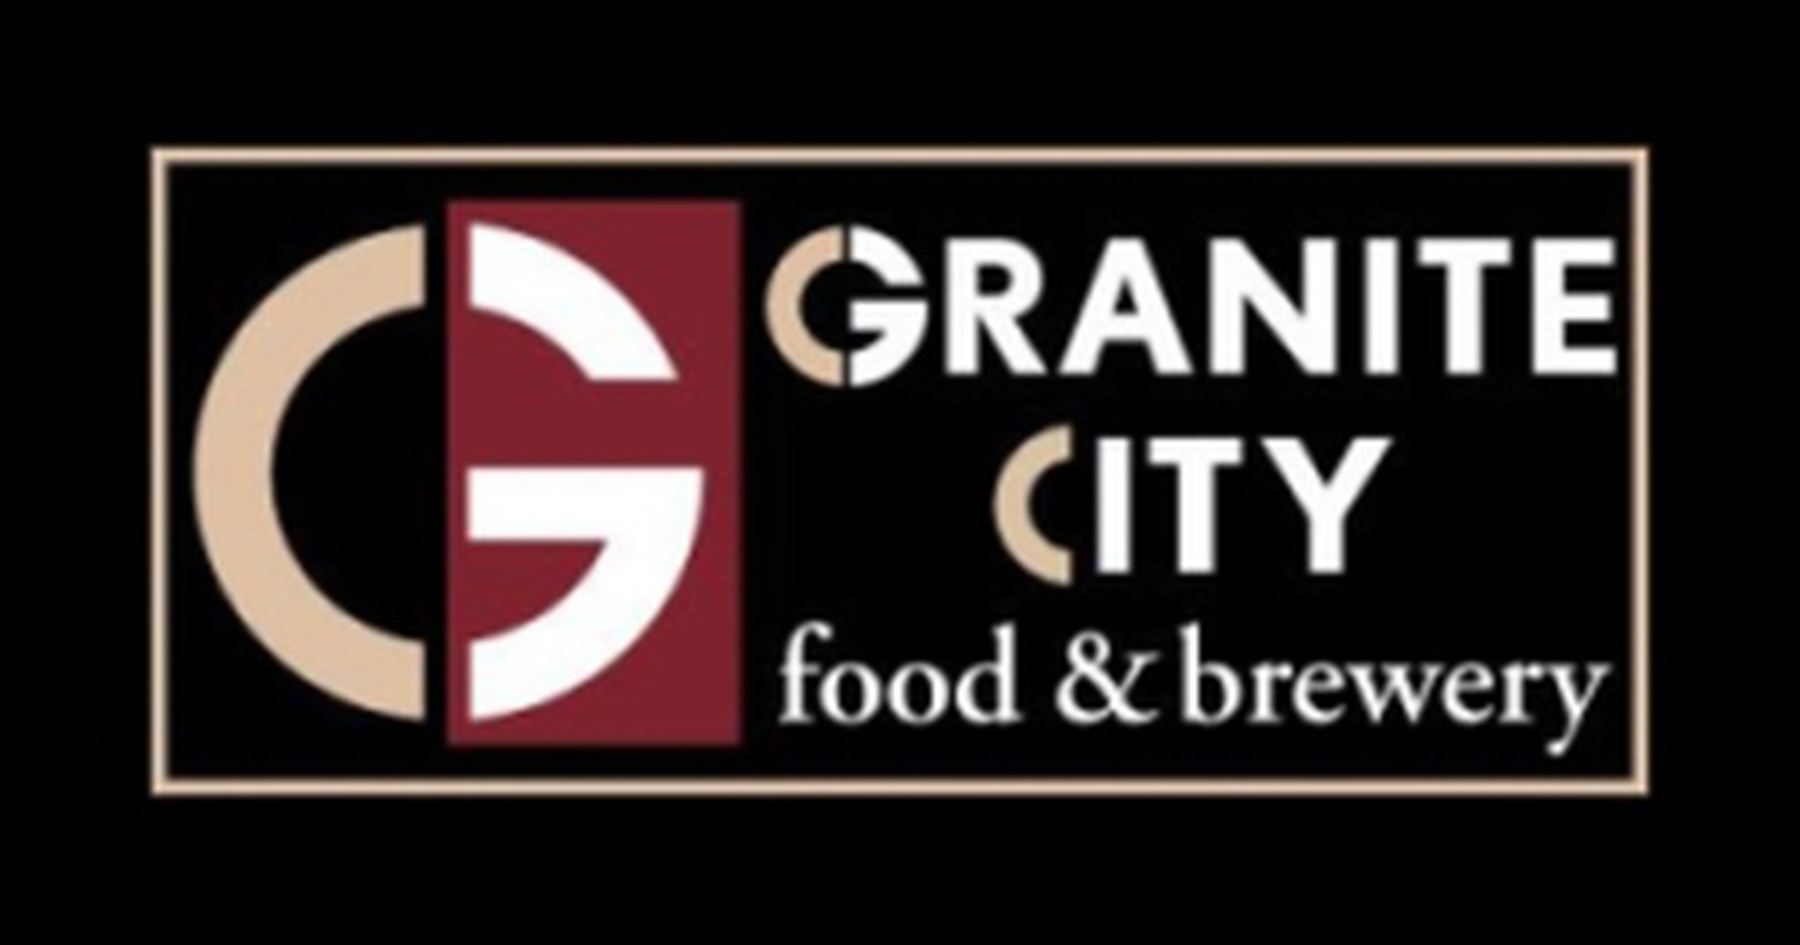 Granite City S Parent Files For Bankruptcy Blaming E